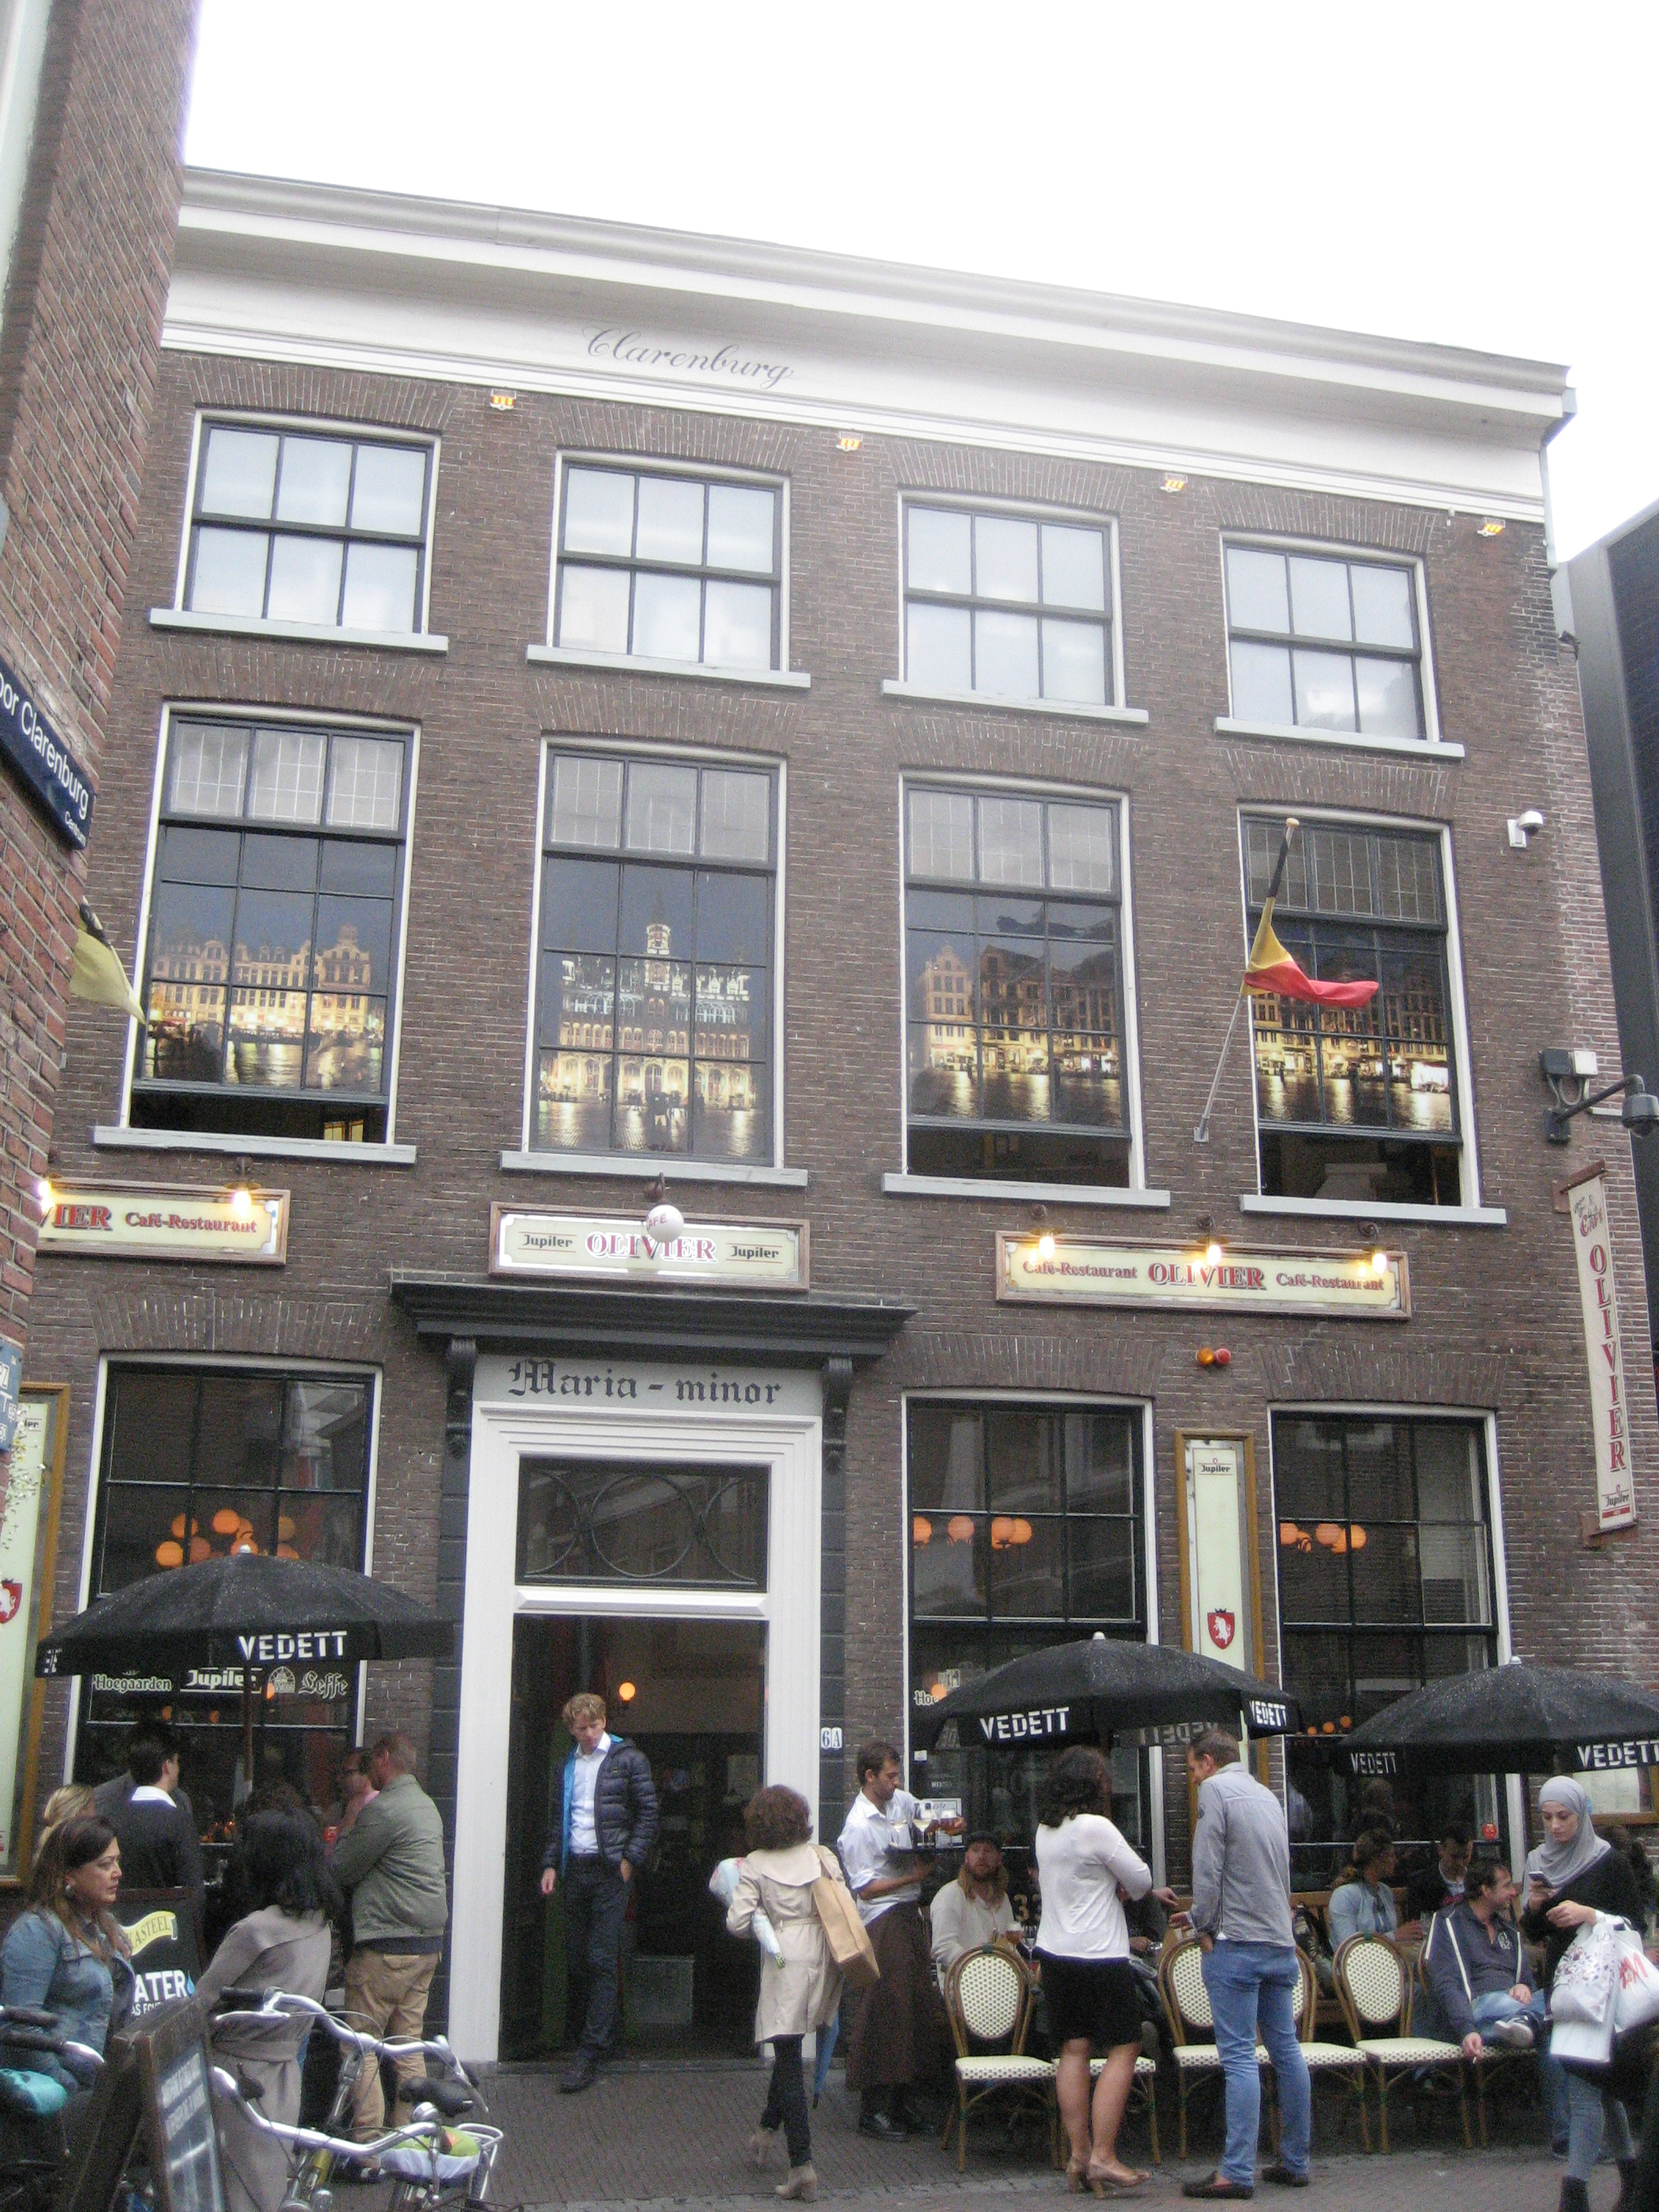 https://upload.wikimedia.org/wikipedia/commons/9/90/Utrecht13.JPG